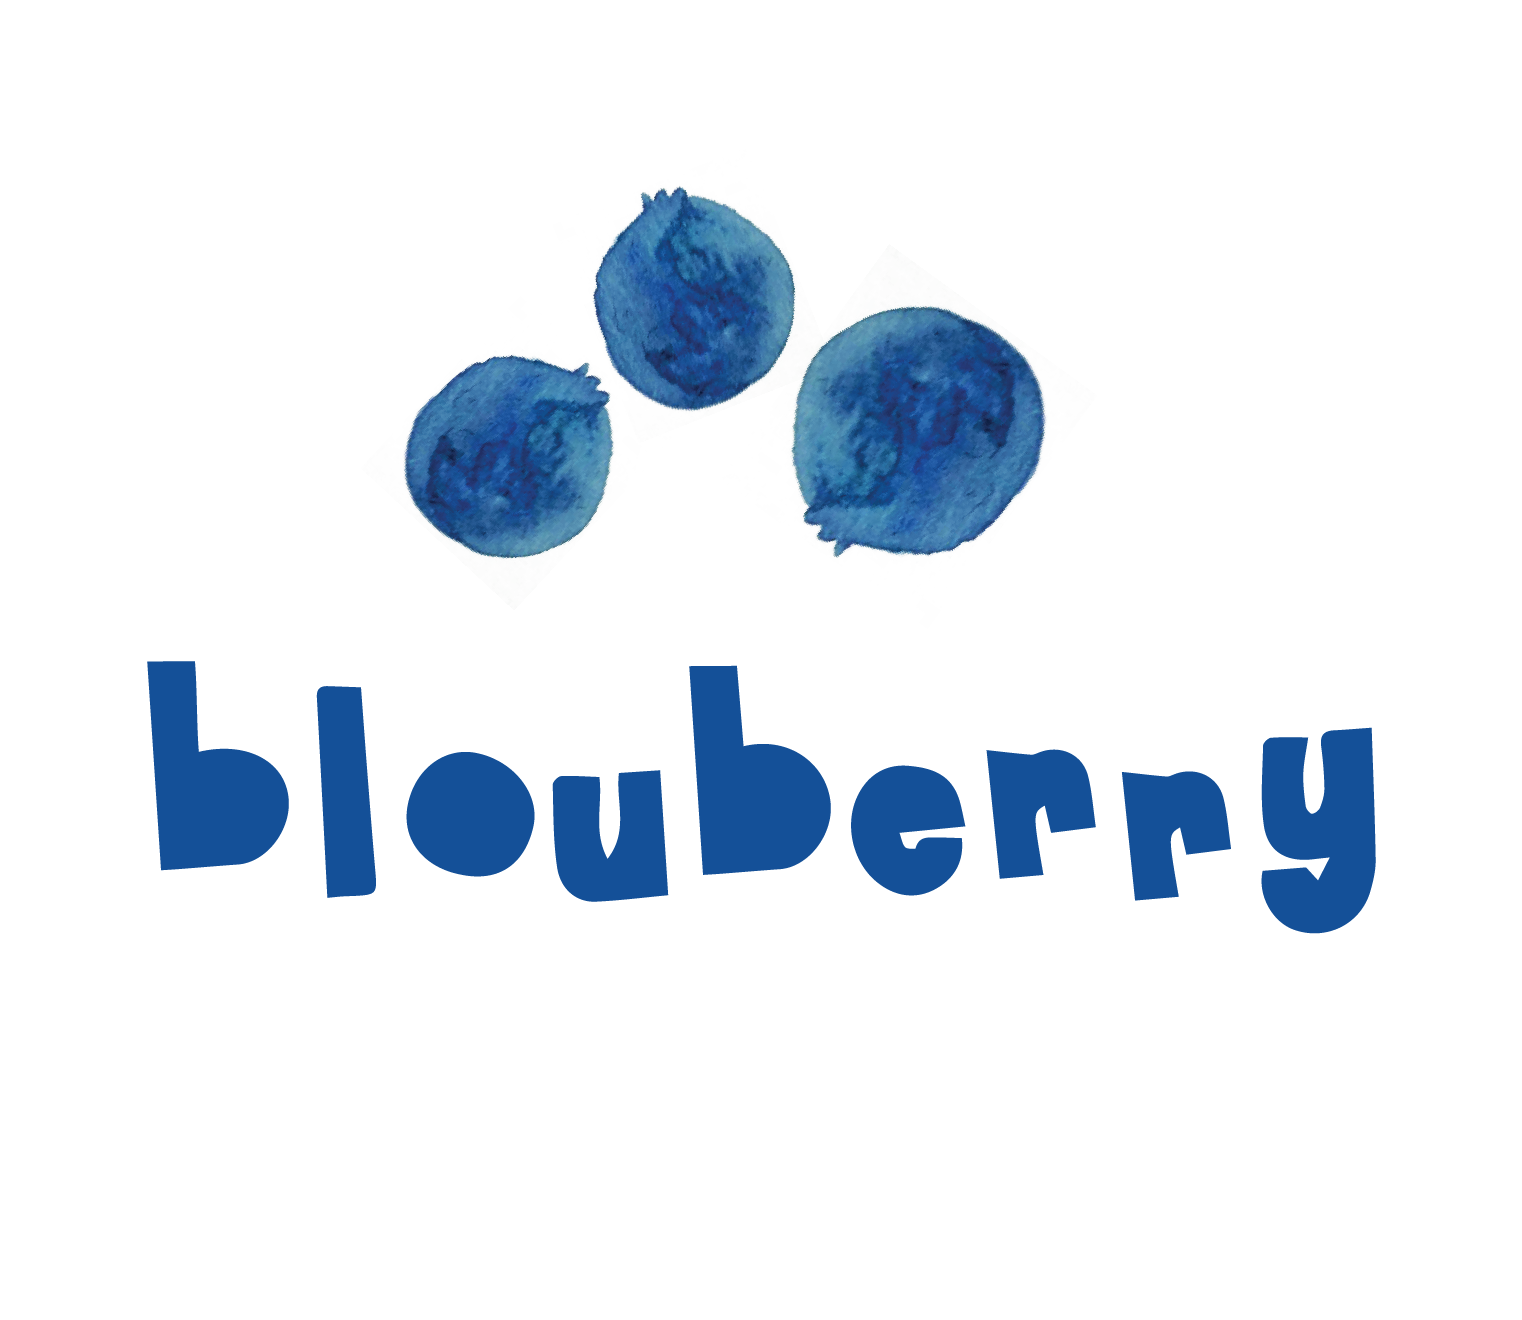 blueberry-19.png